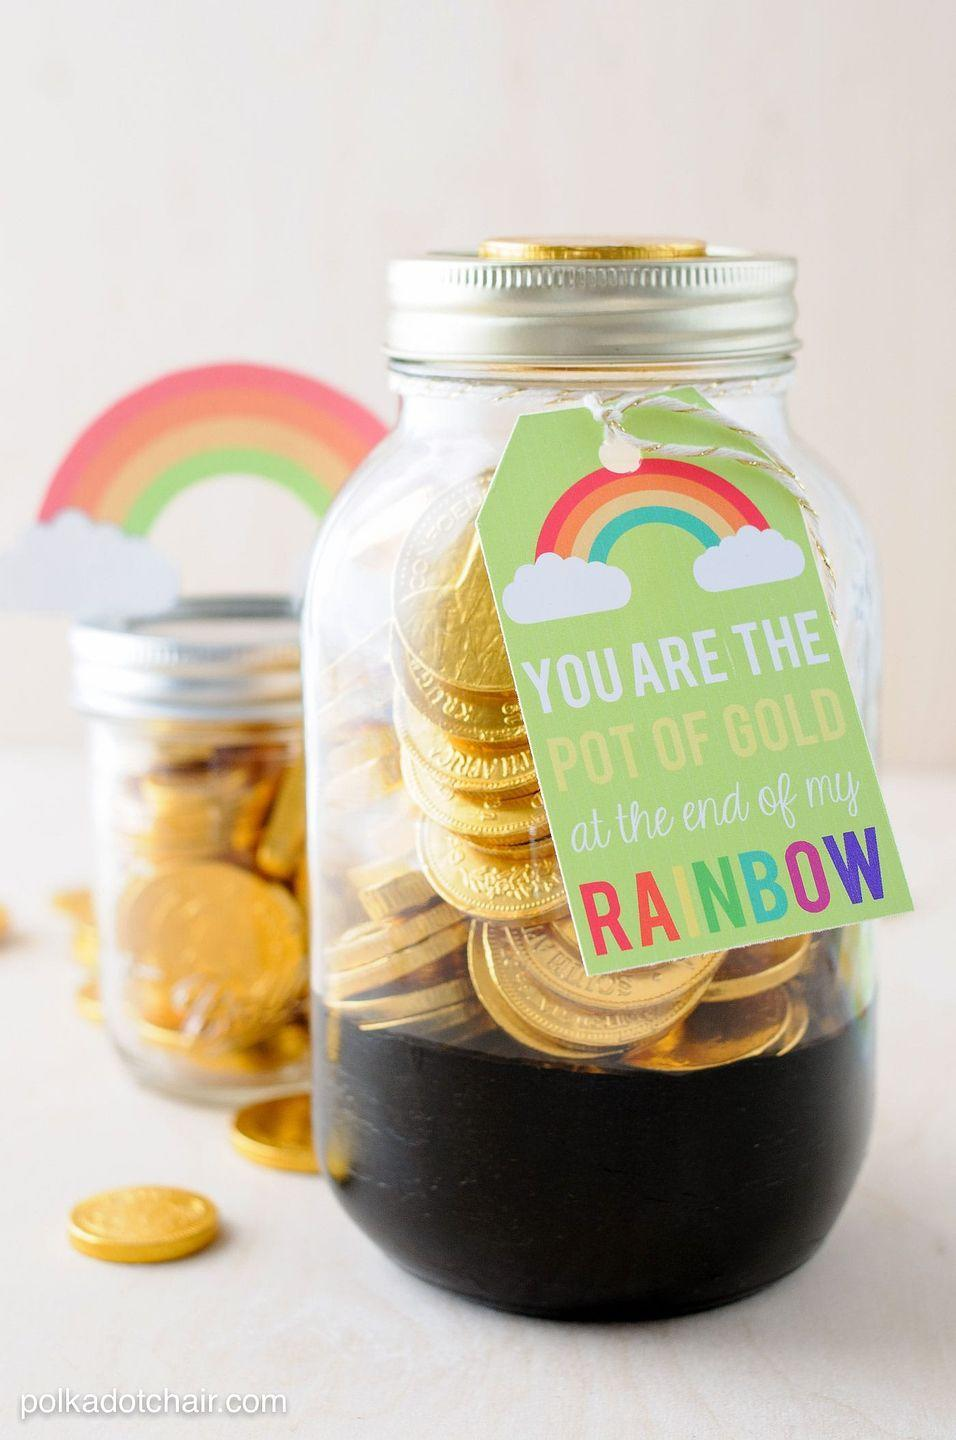 """<p>Fill up these cute Mason jars with chocolate coins to remind your loved ones that they make you feel lucky every day.</p><p><strong>Get the tutorial at <a href=""""https://www.polkadotchair.com/pot-gold-mason-jar-gift-idea/"""" rel=""""nofollow noopener"""" target=""""_blank"""" data-ylk=""""slk:Polka Dot Chair"""" class=""""link rapid-noclick-resp"""">Polka Dot Chair</a>.</strong></p><p><a class=""""link rapid-noclick-resp"""" href=""""https://www.amazon.com/KAMOTA-Regular-Magnetic-Whiteboard-Included/dp/B07JFYKZD8/?tag=syn-yahoo-20&ascsubtag=%5Bartid%7C10050.g.4035%5Bsrc%7Cyahoo-us"""" rel=""""nofollow noopener"""" target=""""_blank"""" data-ylk=""""slk:SHOP MASON JARS"""">SHOP MASON JARS</a></p>"""